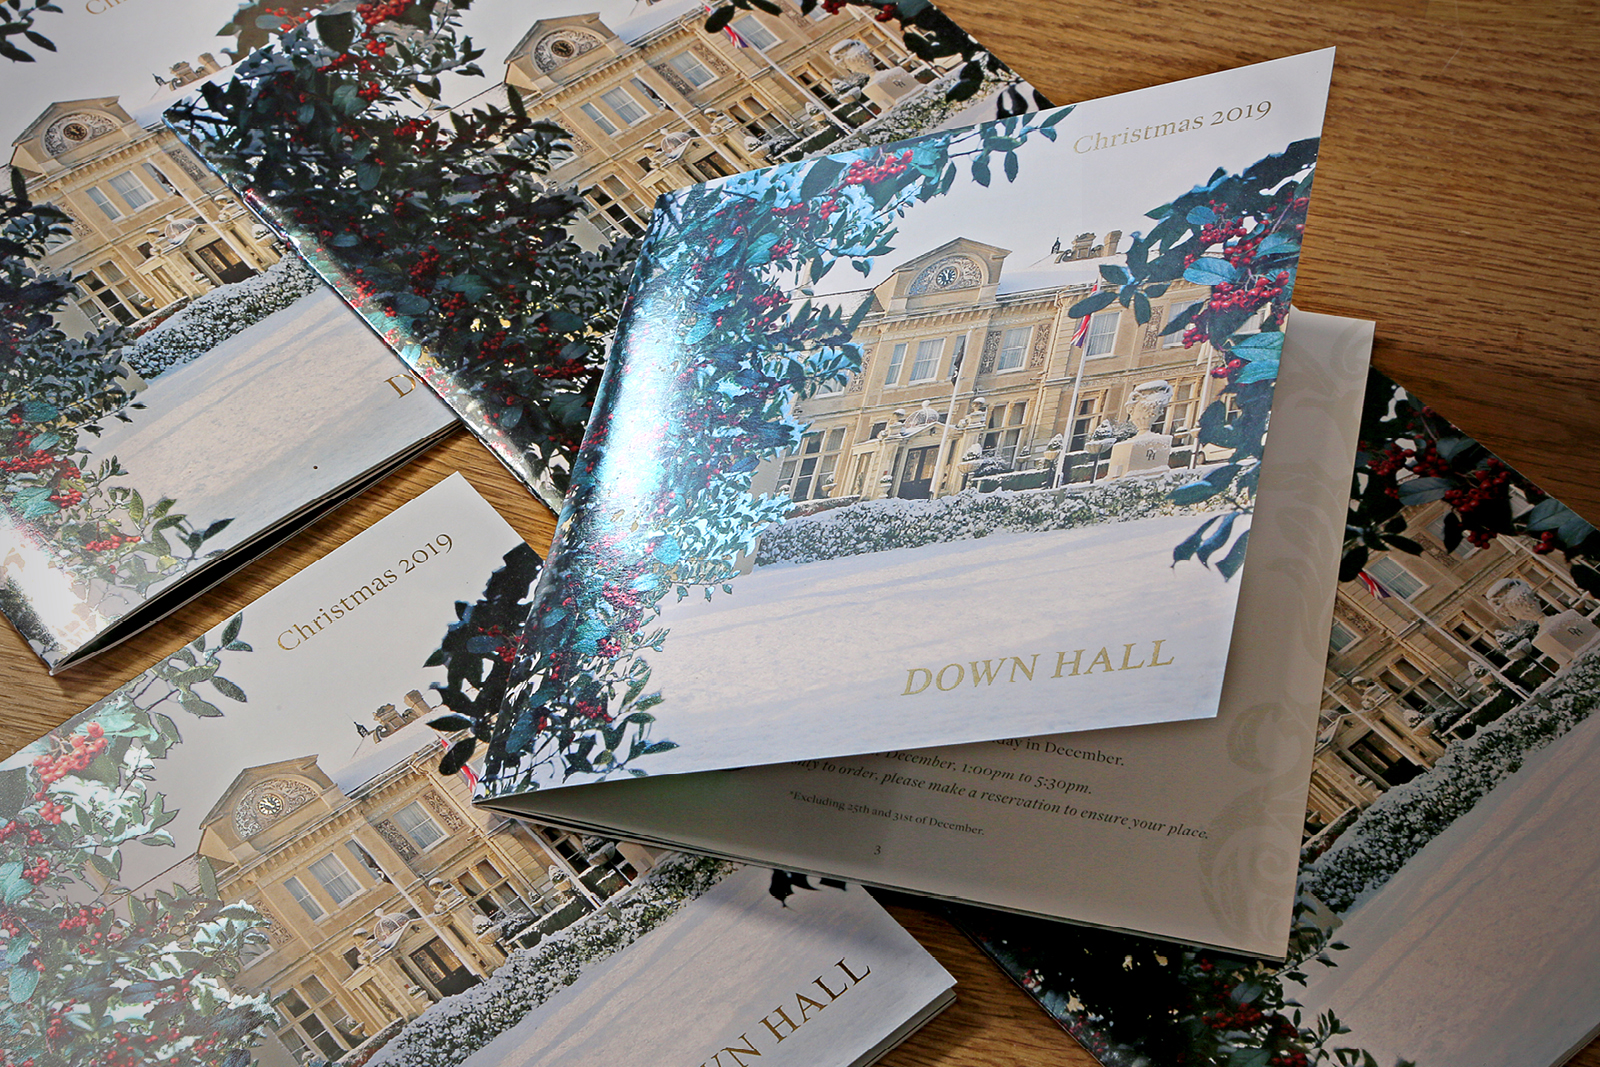 Down Hall 2019 Christmas Brochure design & production